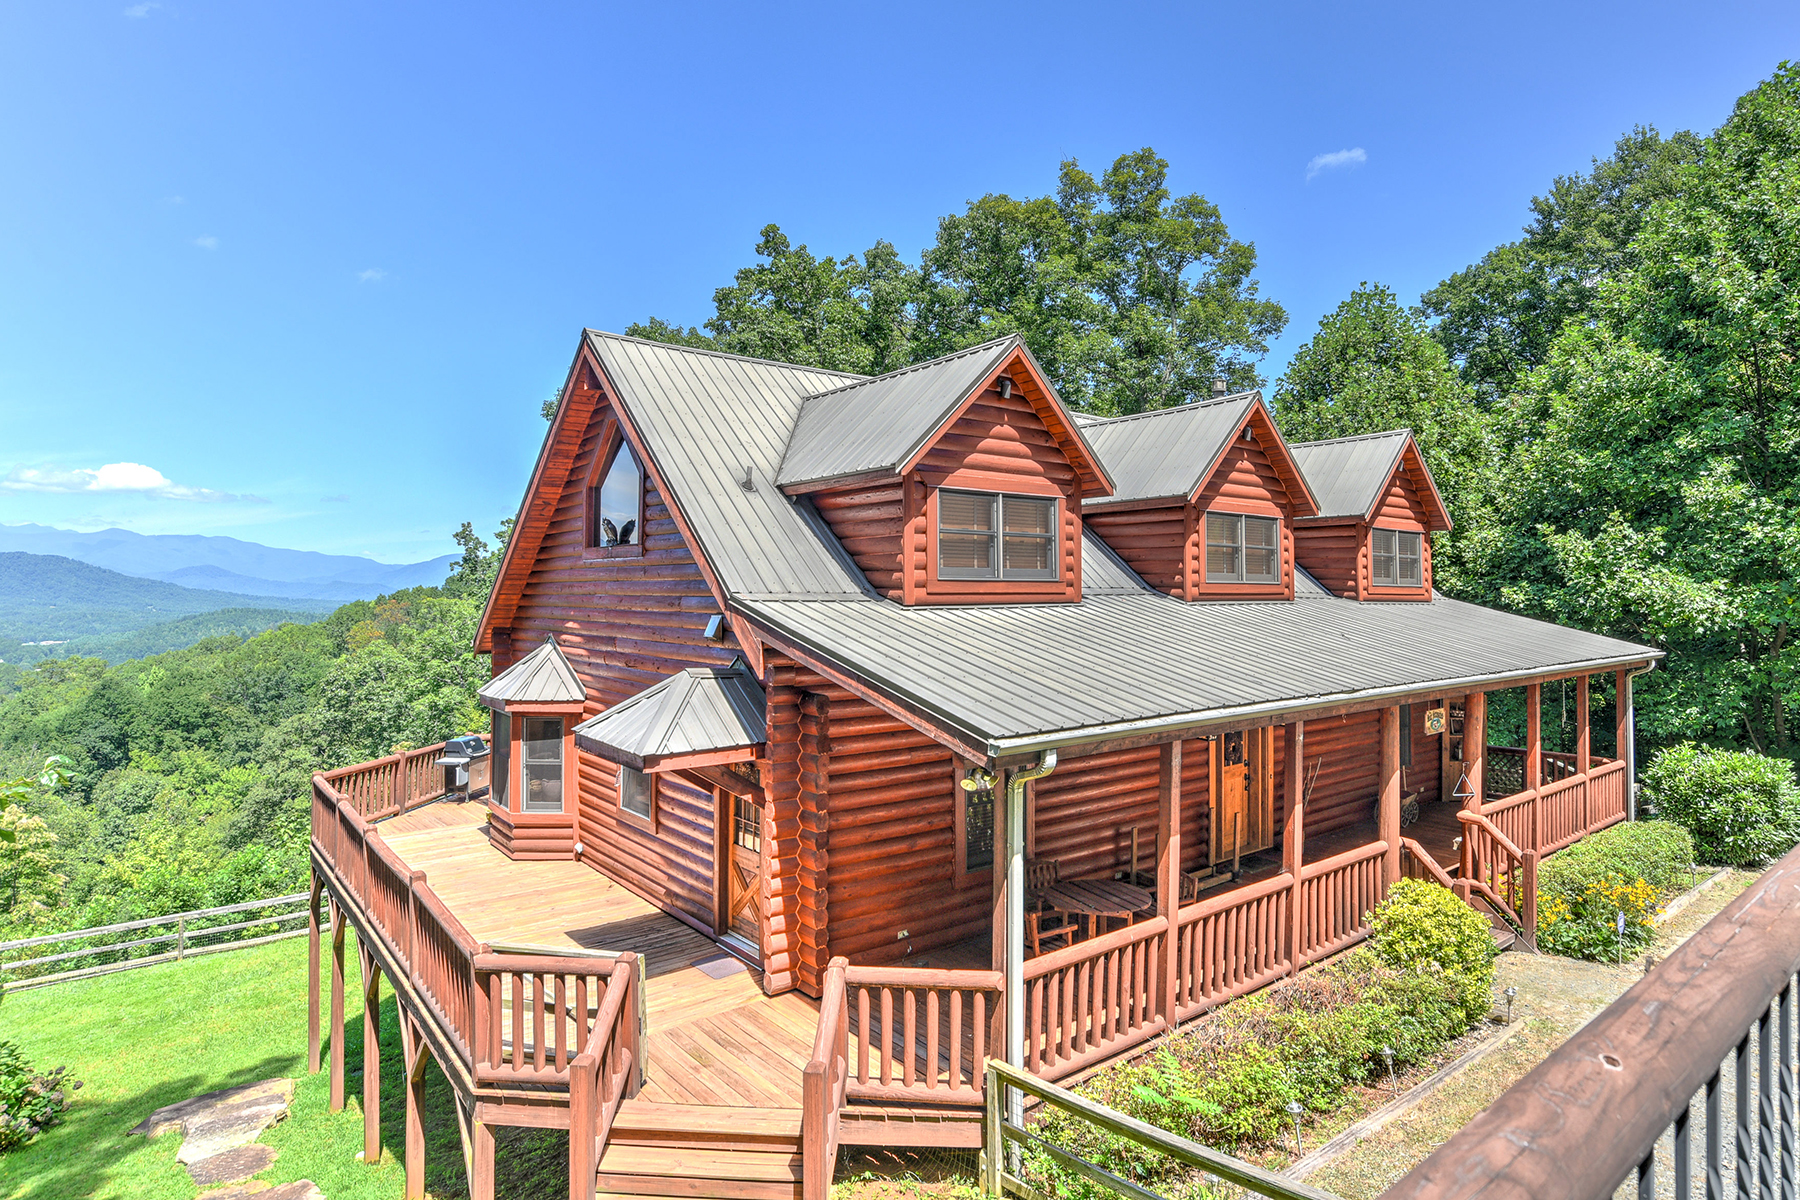 Single Family Homes for Active at GATEWAY MOUNTAIN 1401 Mitchell View Dr Old Fort, North Carolina 28762 United States